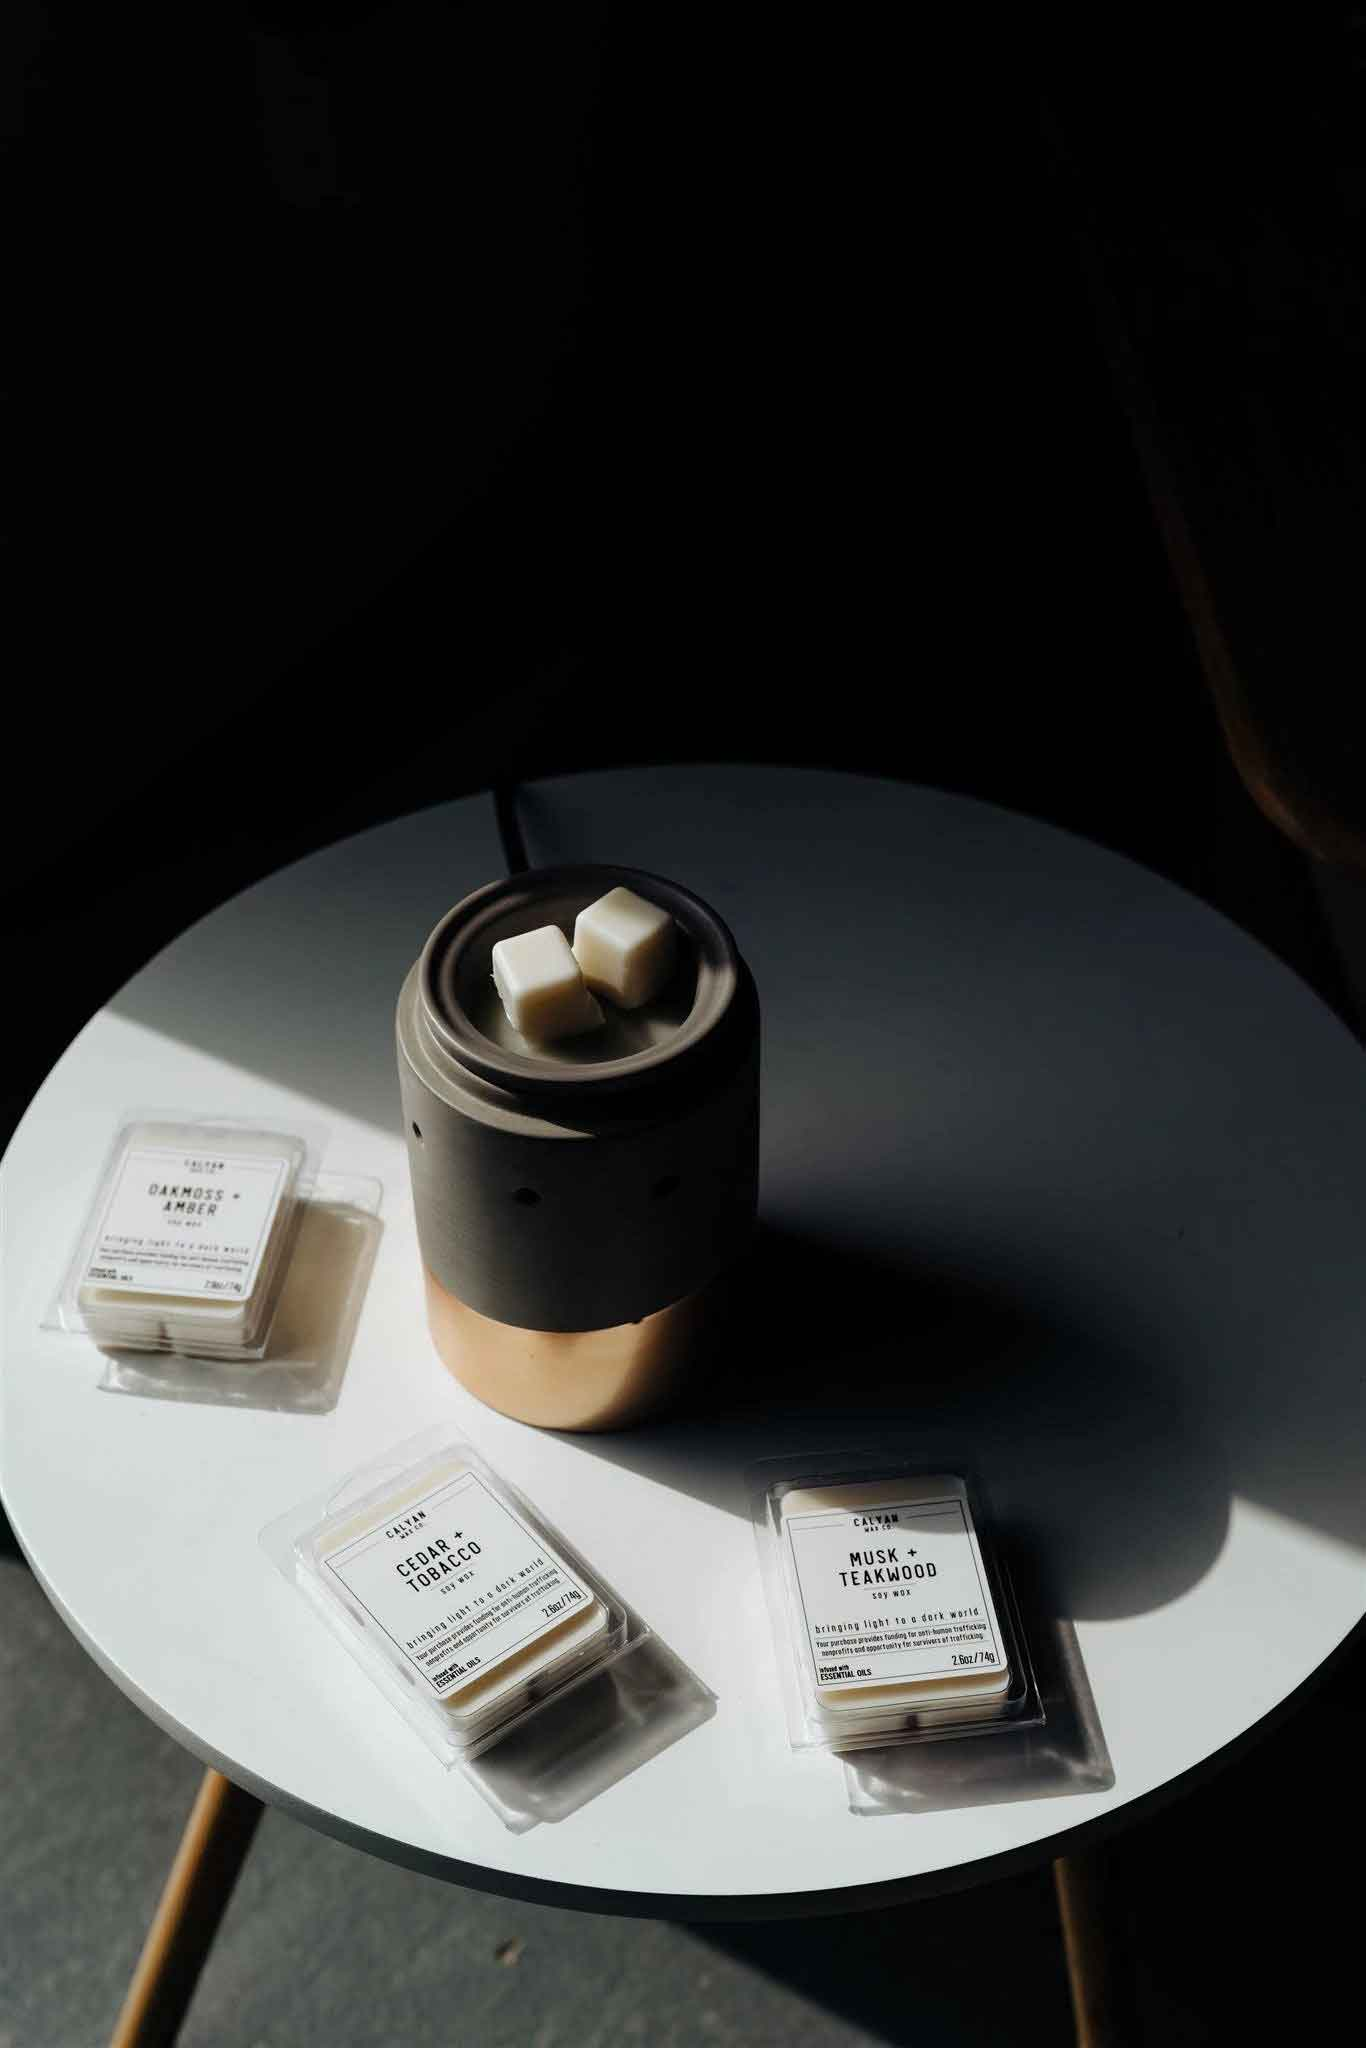 Wax Melts Lifestyle Image With Wax Melter Cedar + Tobacco Scent Calyan Wax Co.